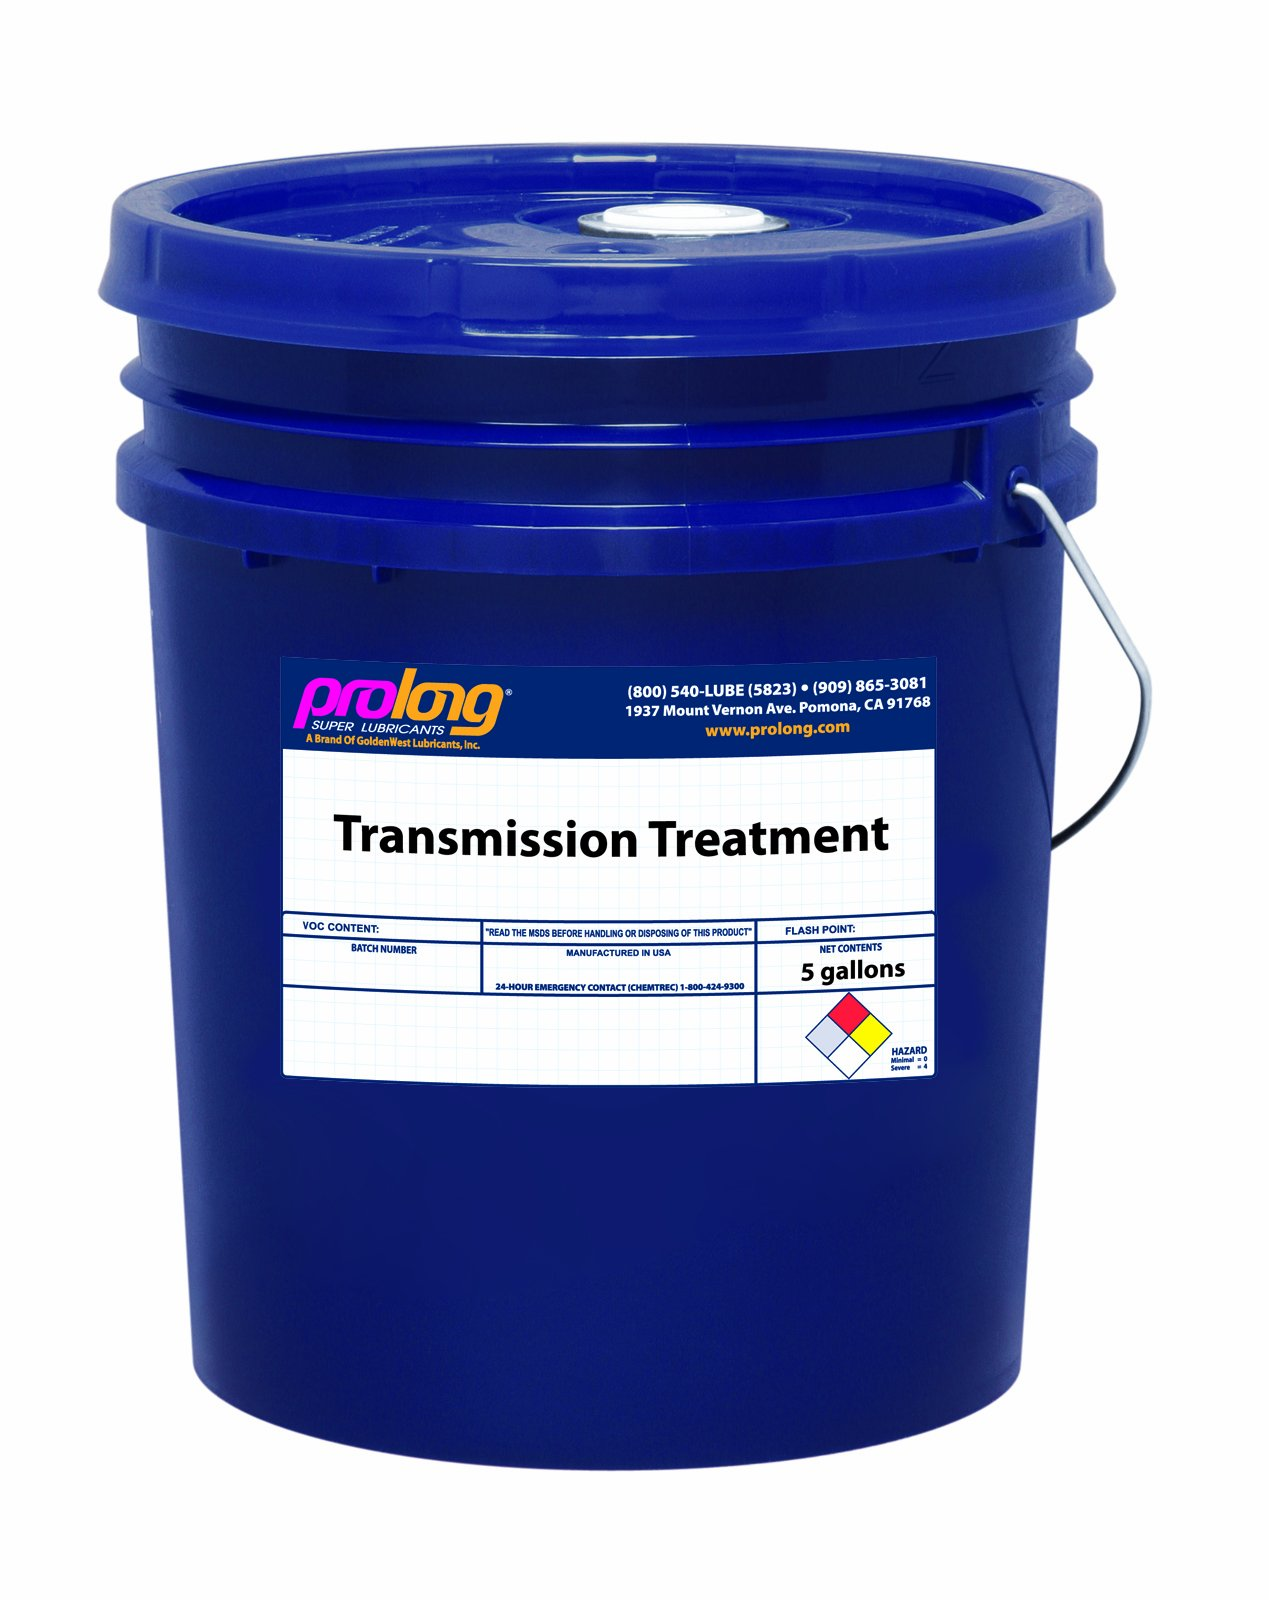 Prolong Super Lubricants PSL15225 Transmission Treatment - 5 Gallon